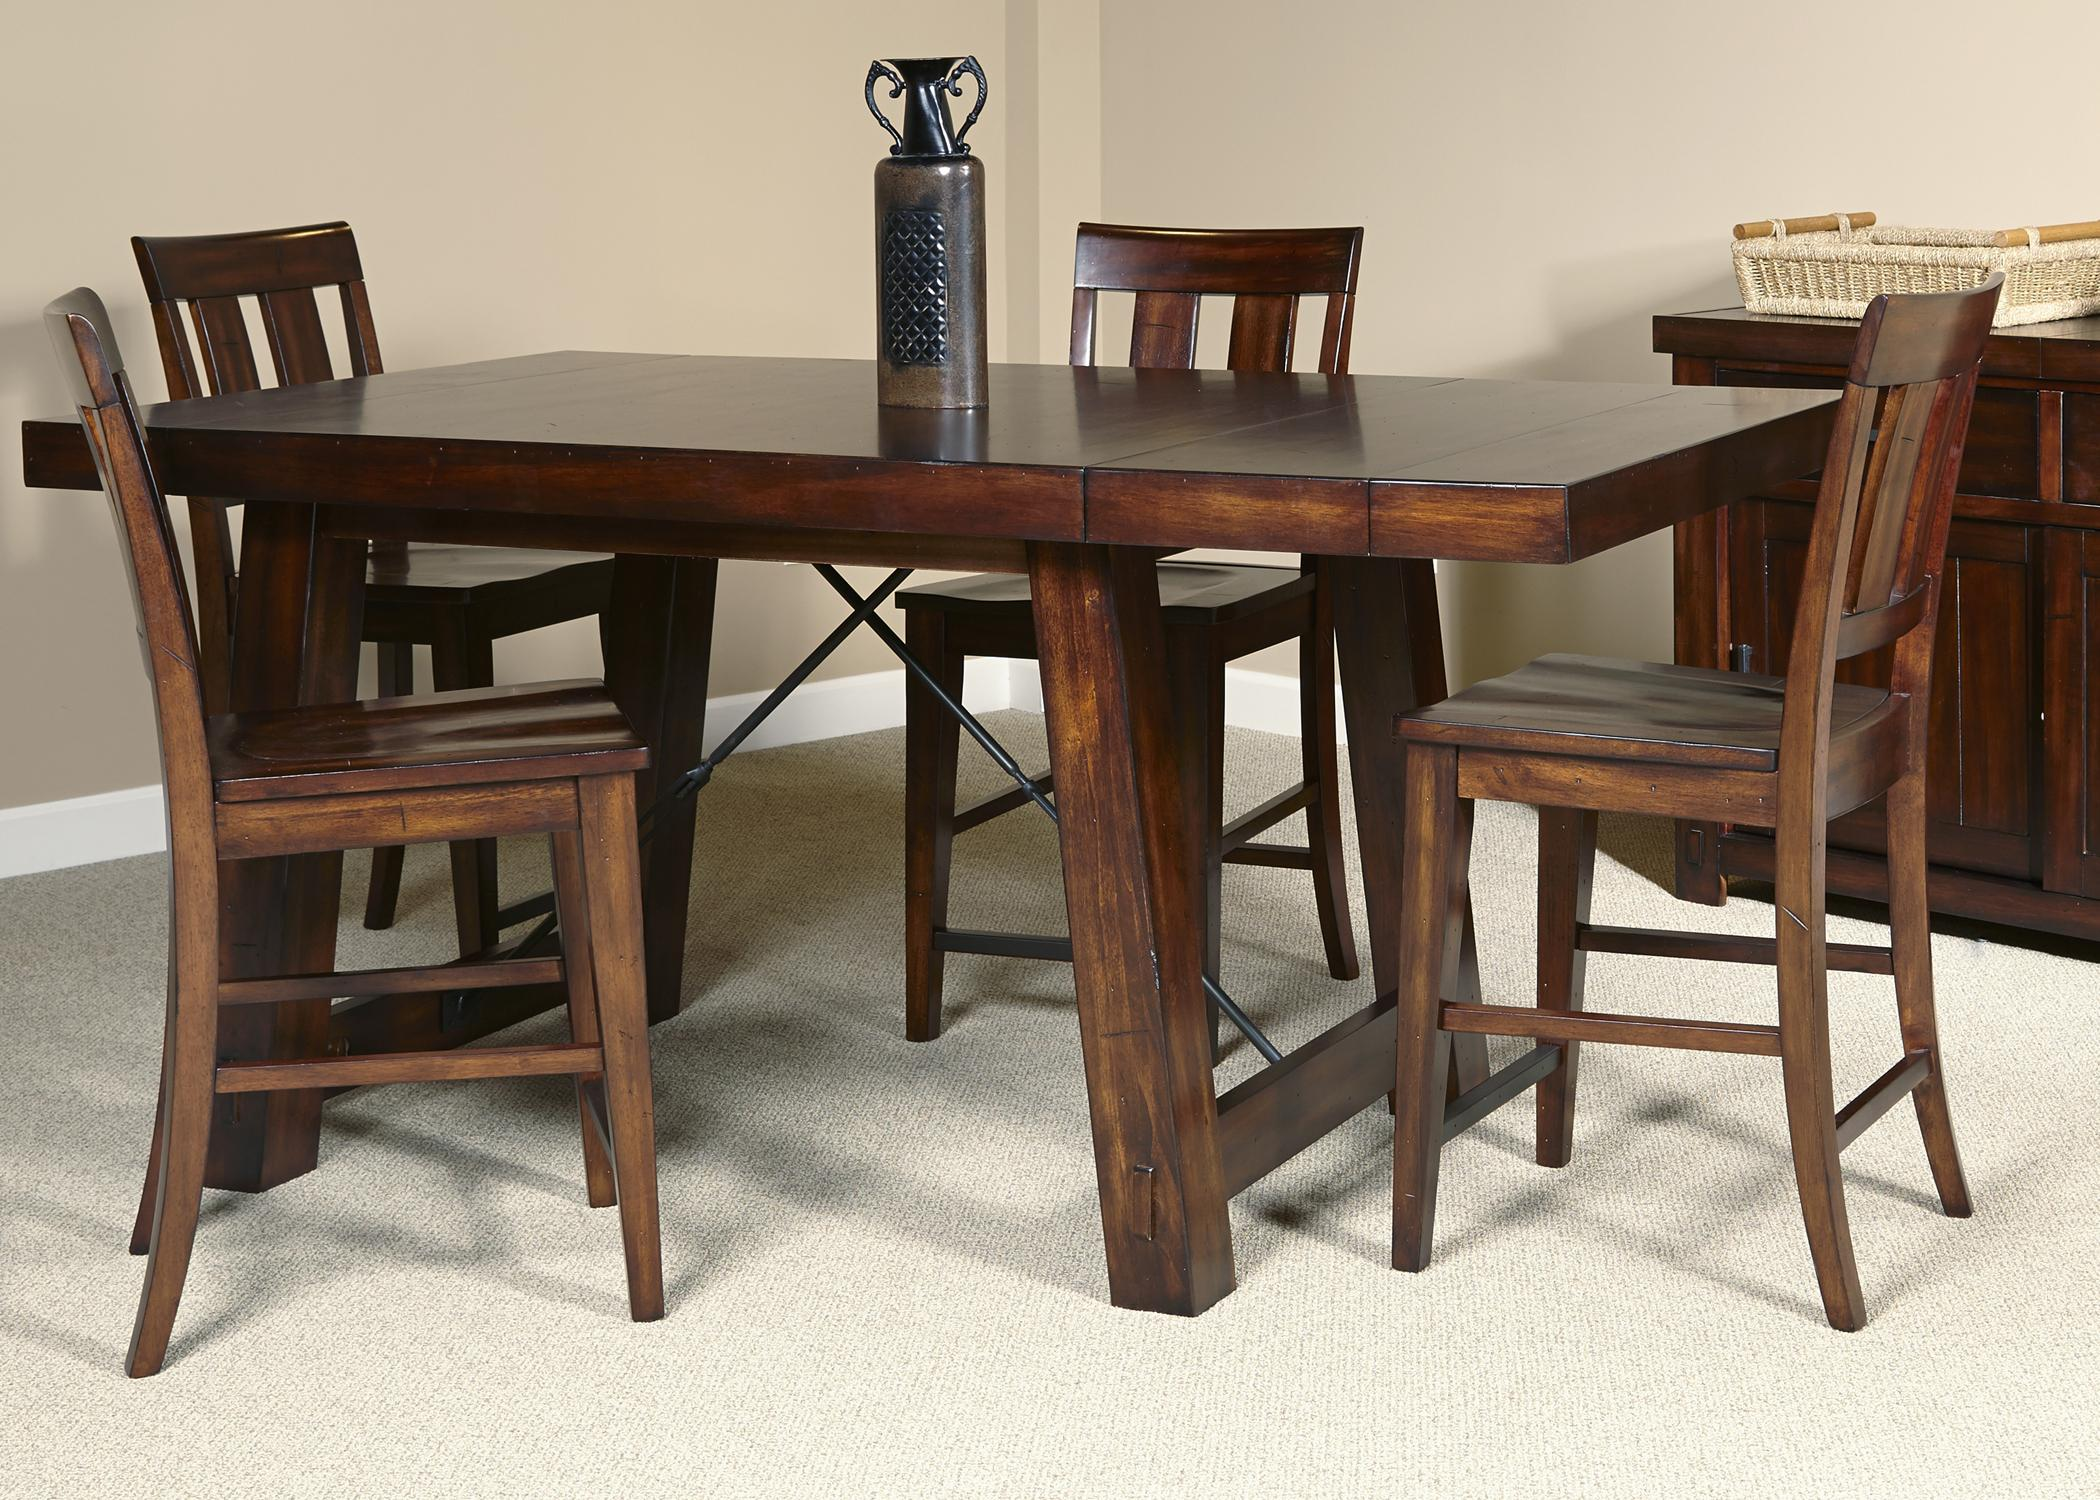 5 Piece Gathering Table With Slat Back Counter Height Chair Set